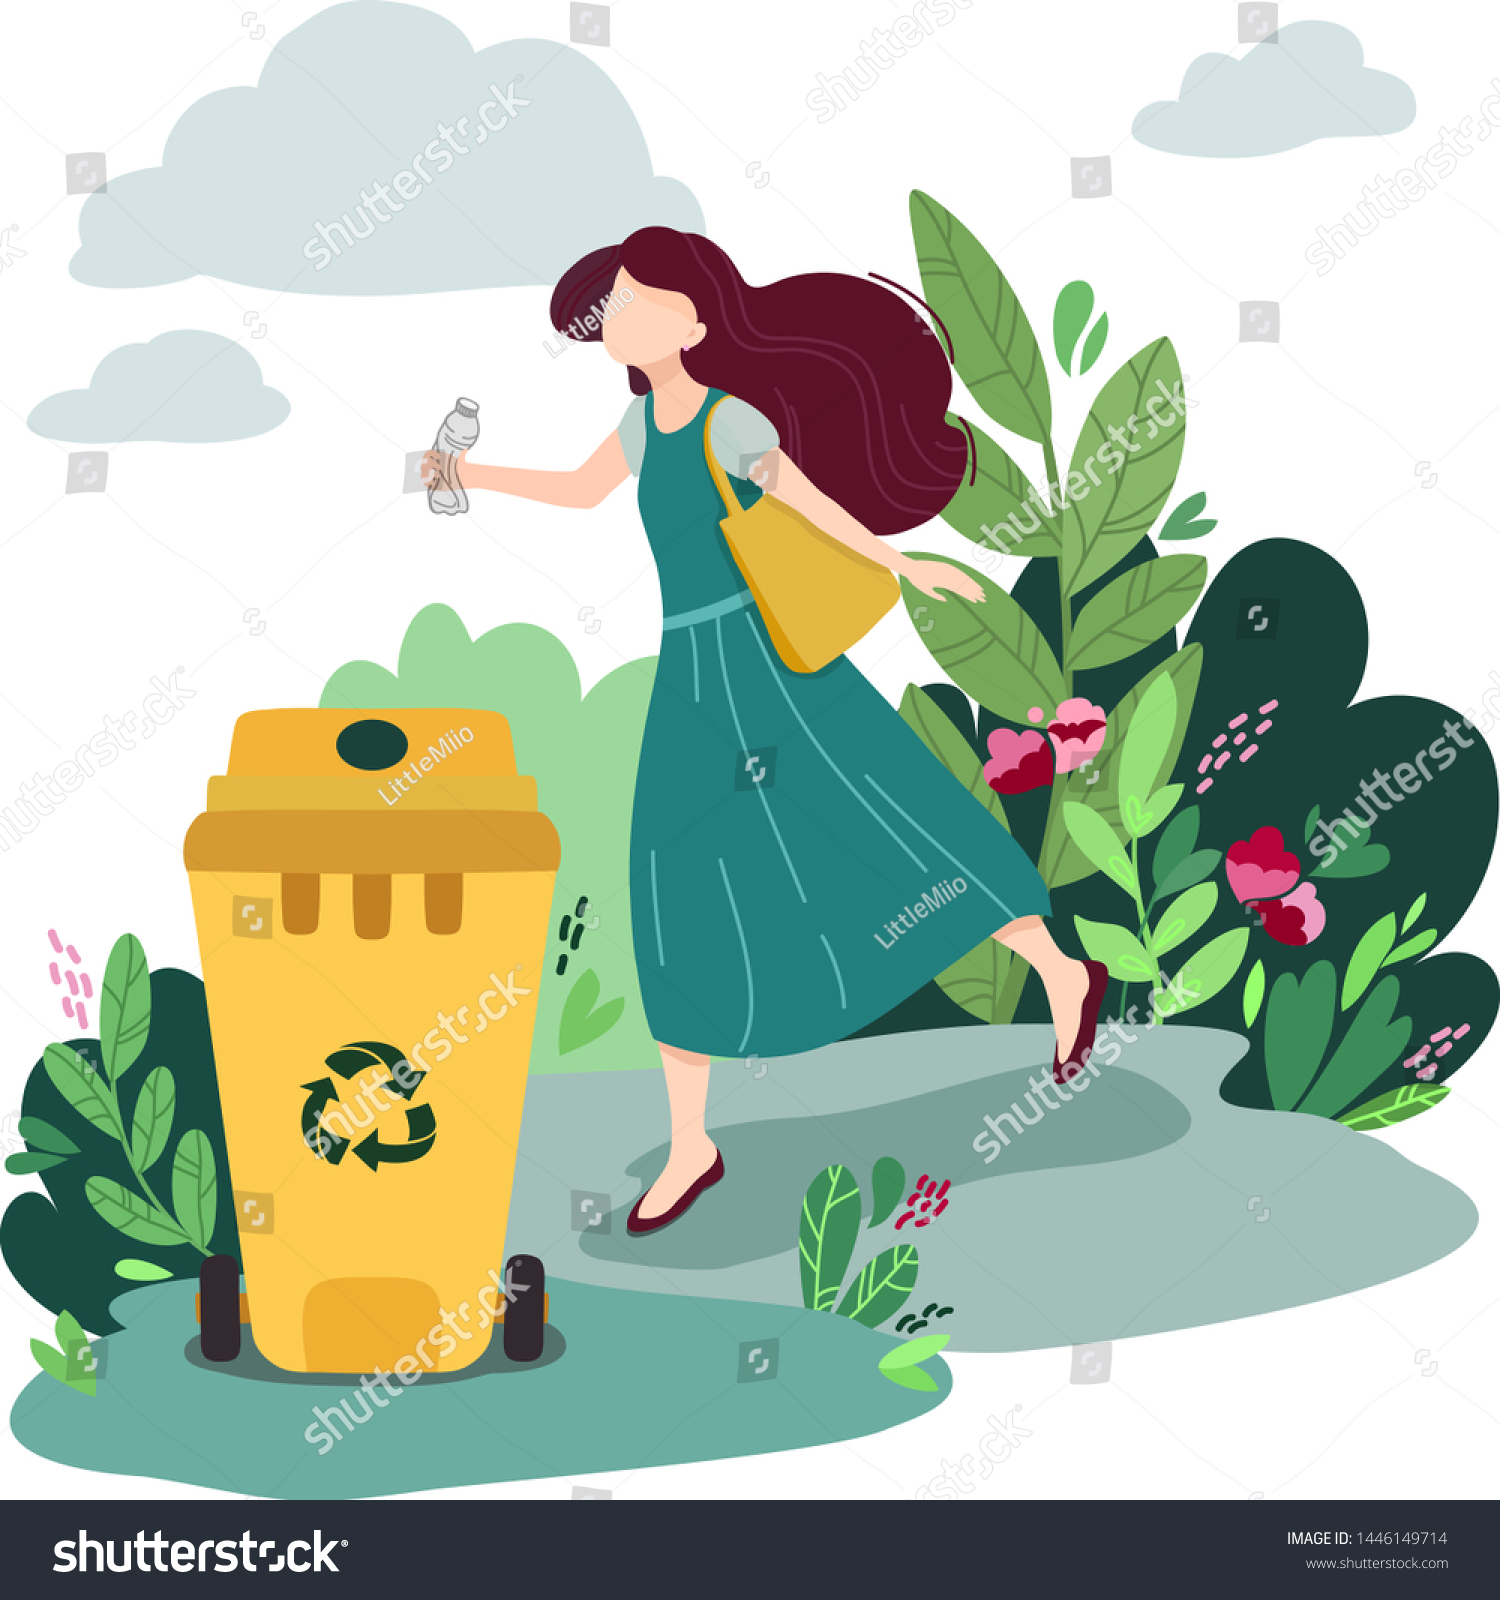 Pretty Woman Sort Plastic Garbage Into Stock Vector Royalty Free 1446149714